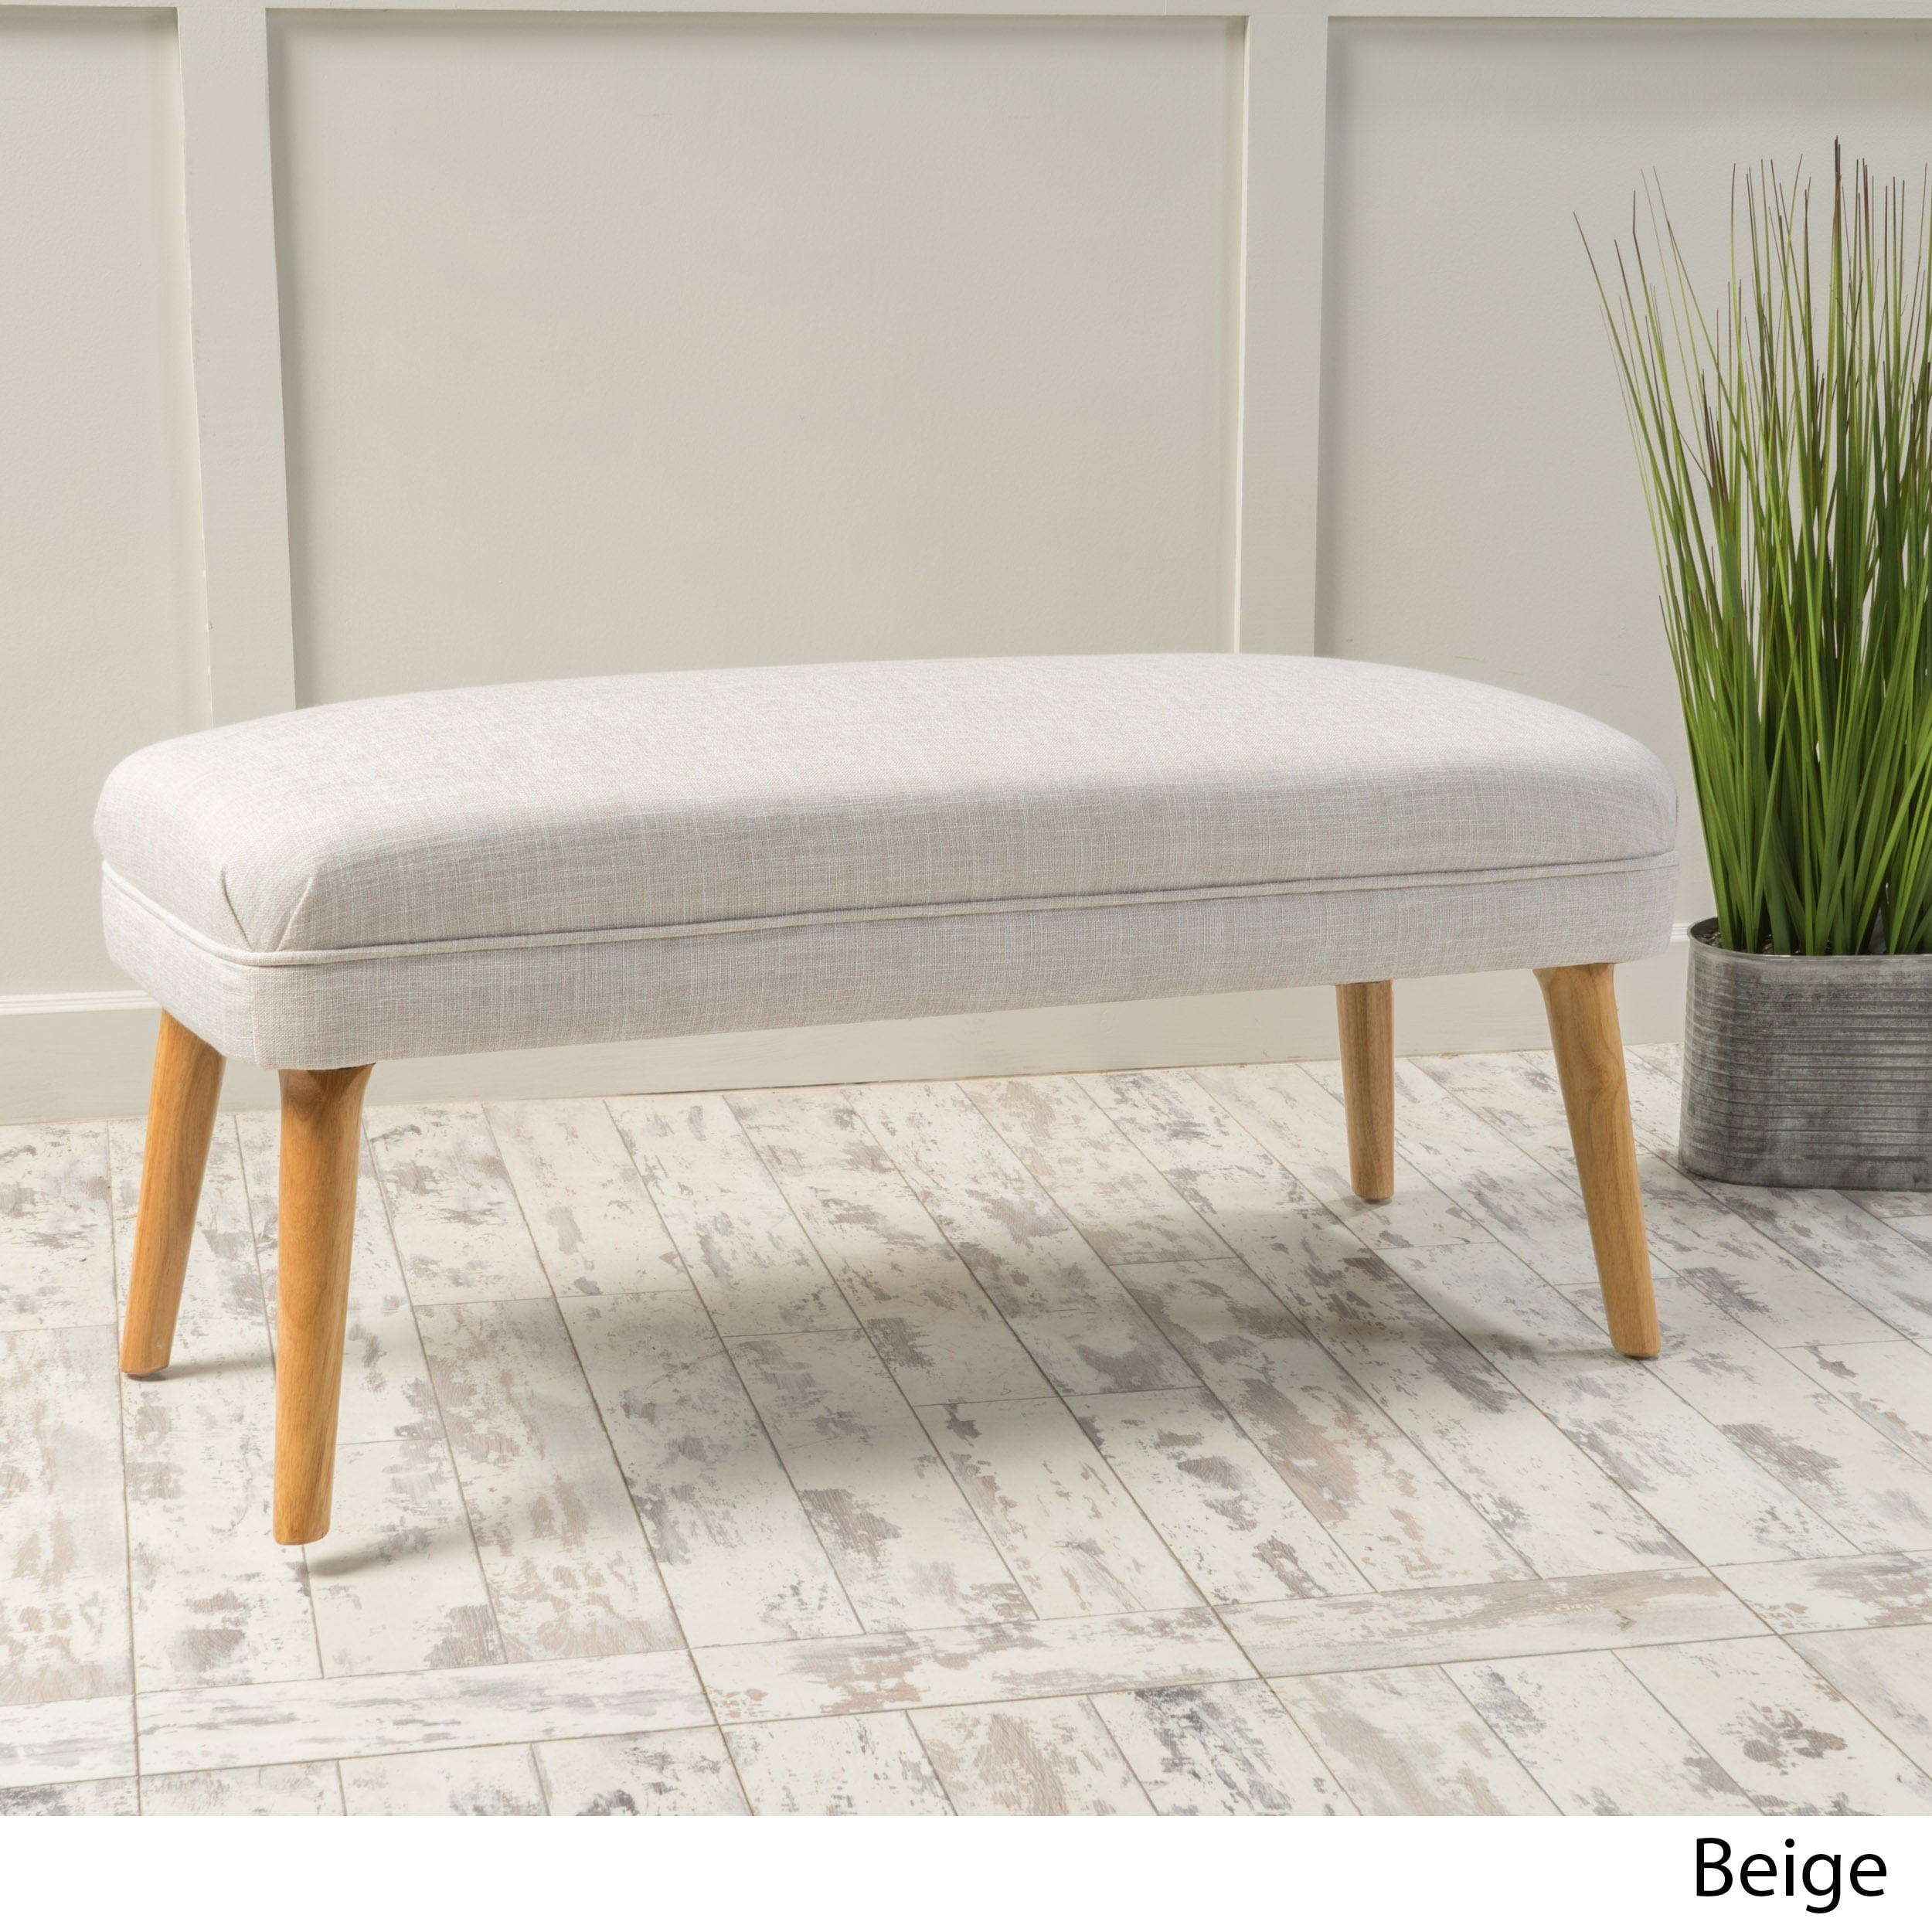 desdemona midcentury fabric ottoman by christopher knight home  freeshipping today  overstockcom  . desdemona midcentury fabric ottoman by christopher knight home